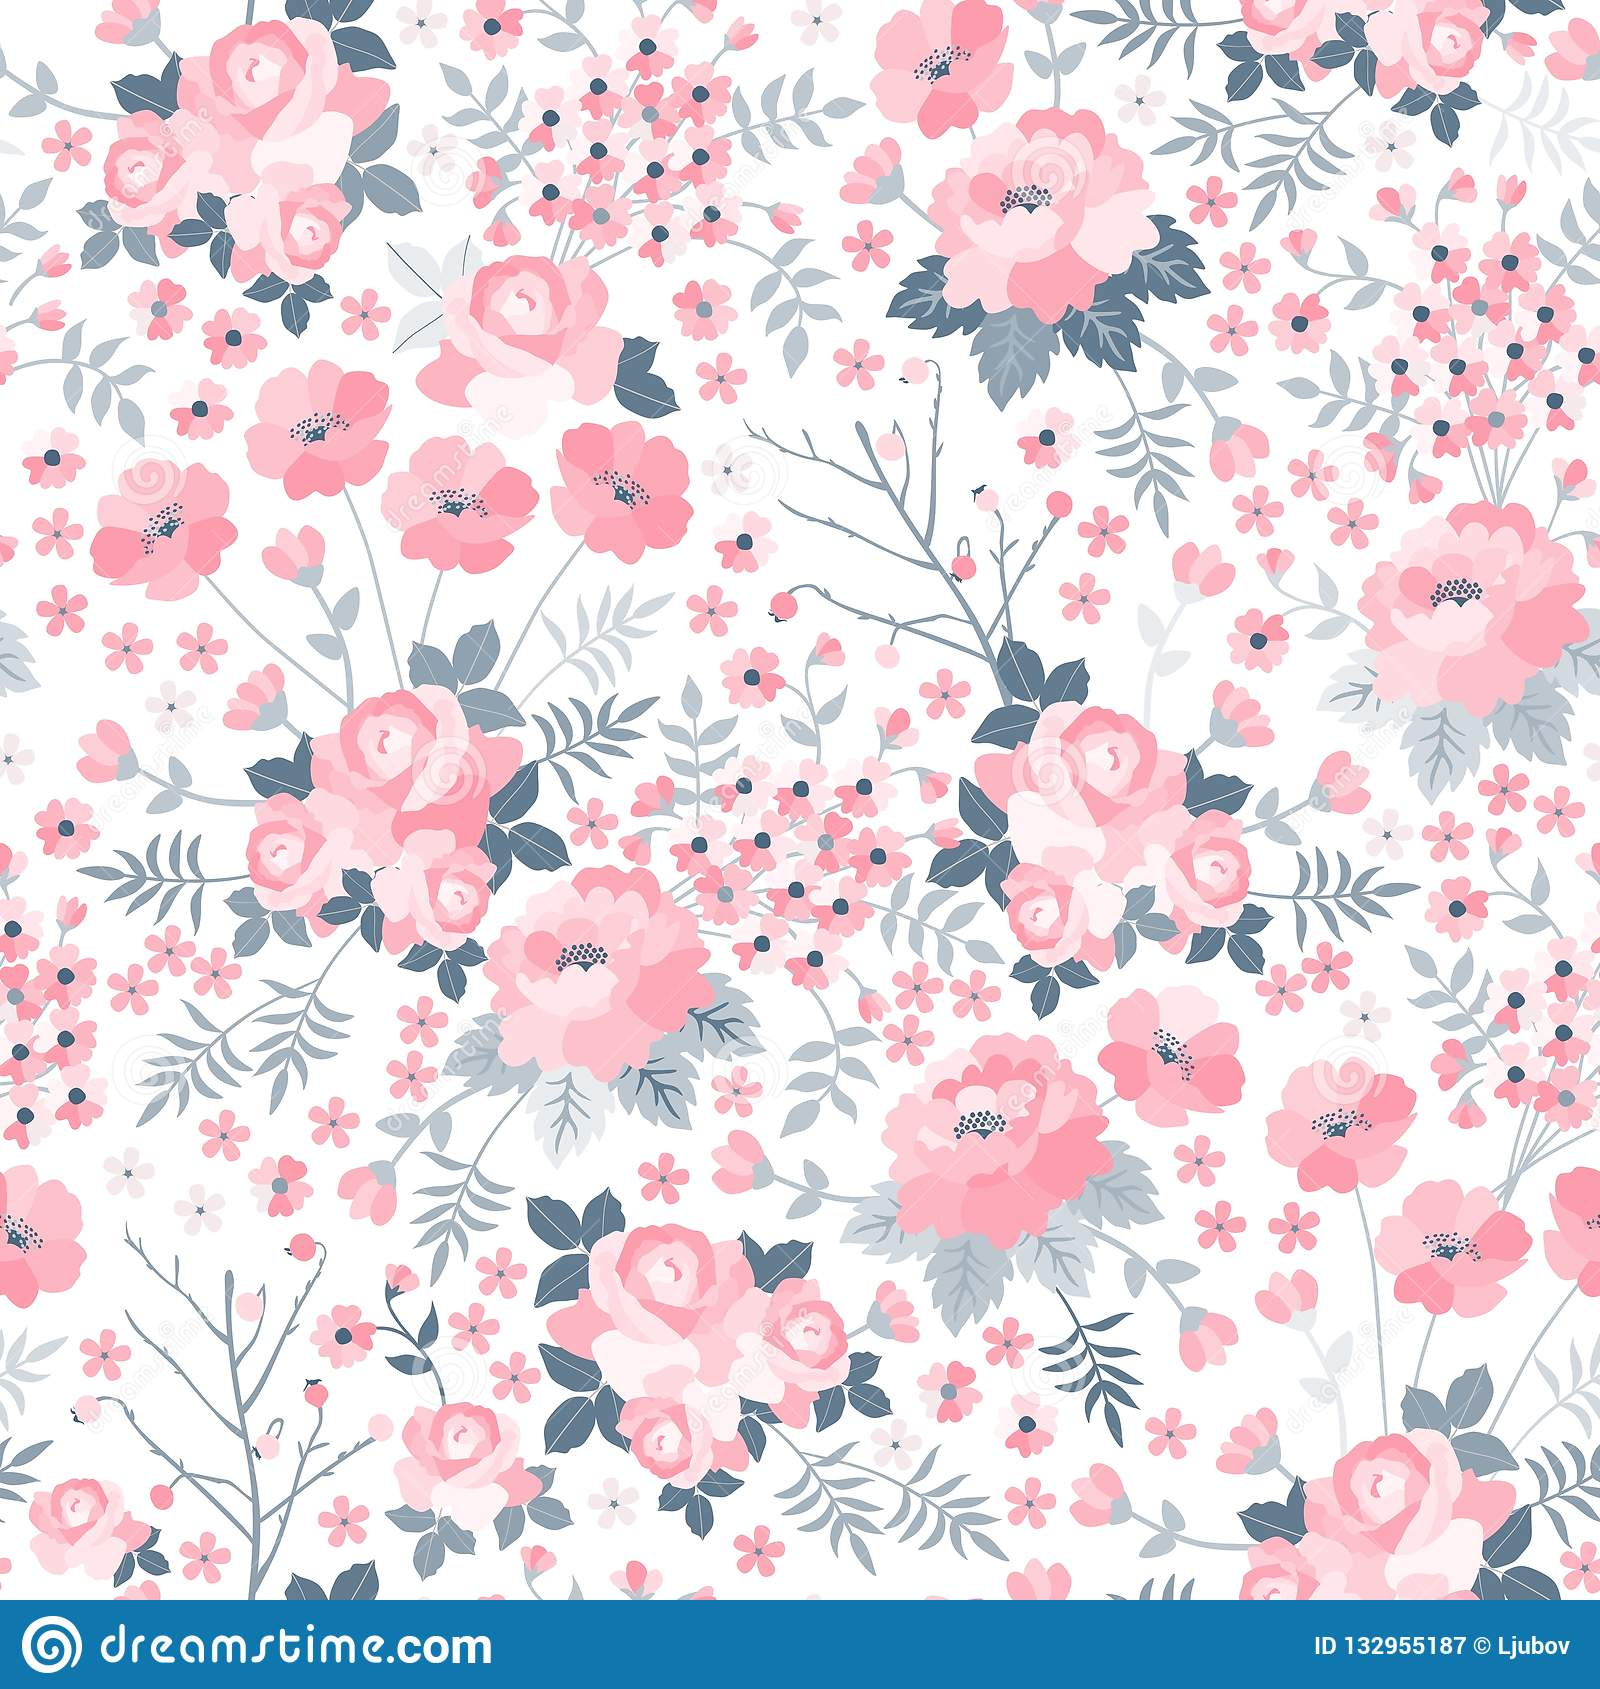 Tender seamless pattern with pink flowers on white background. Ditsy floral illustration.